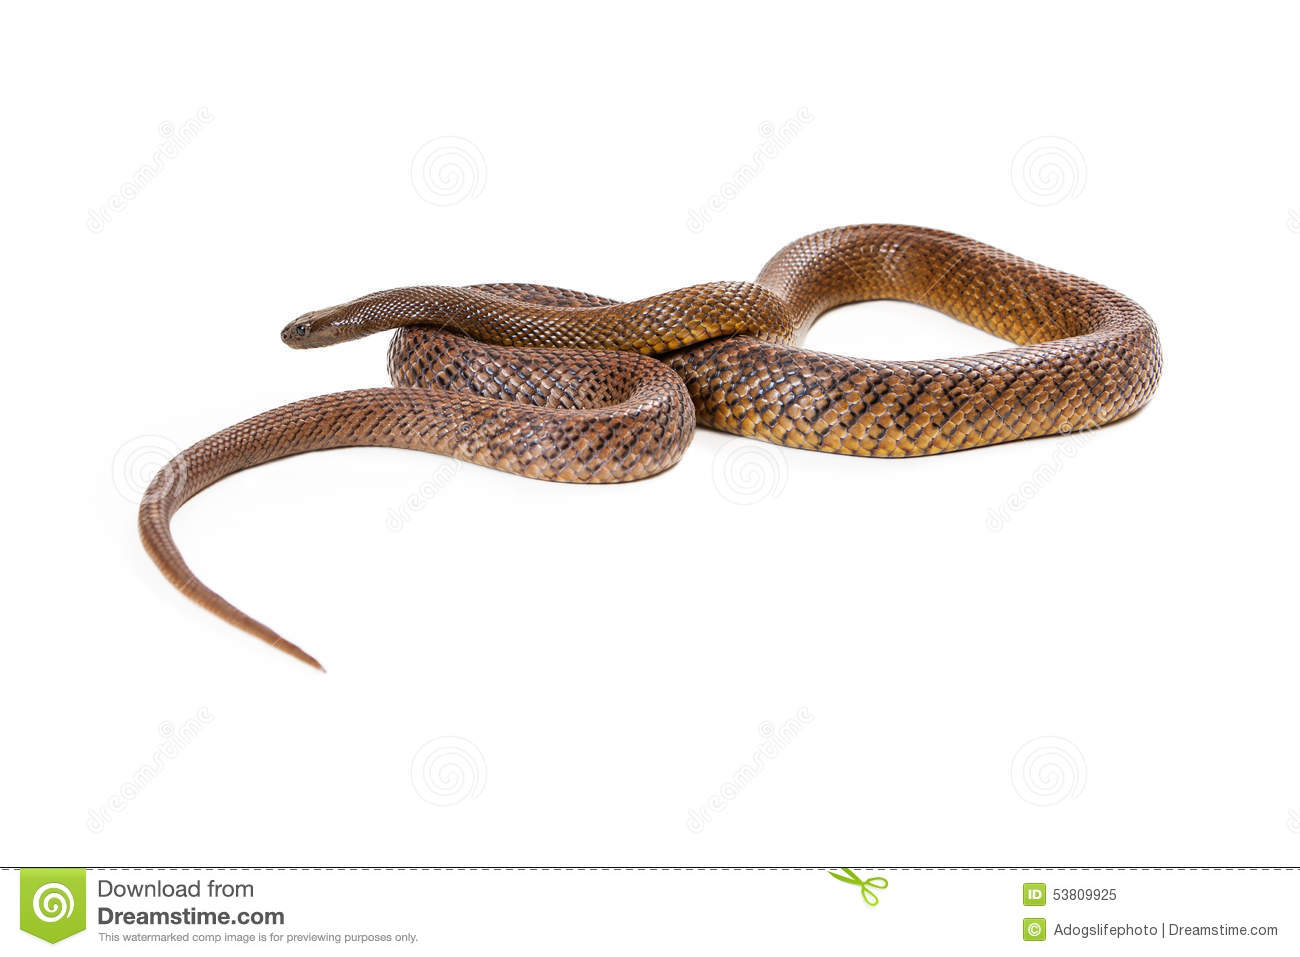 Inland taipan snake coiled up stock photo image 53809925 for Take me fishing org